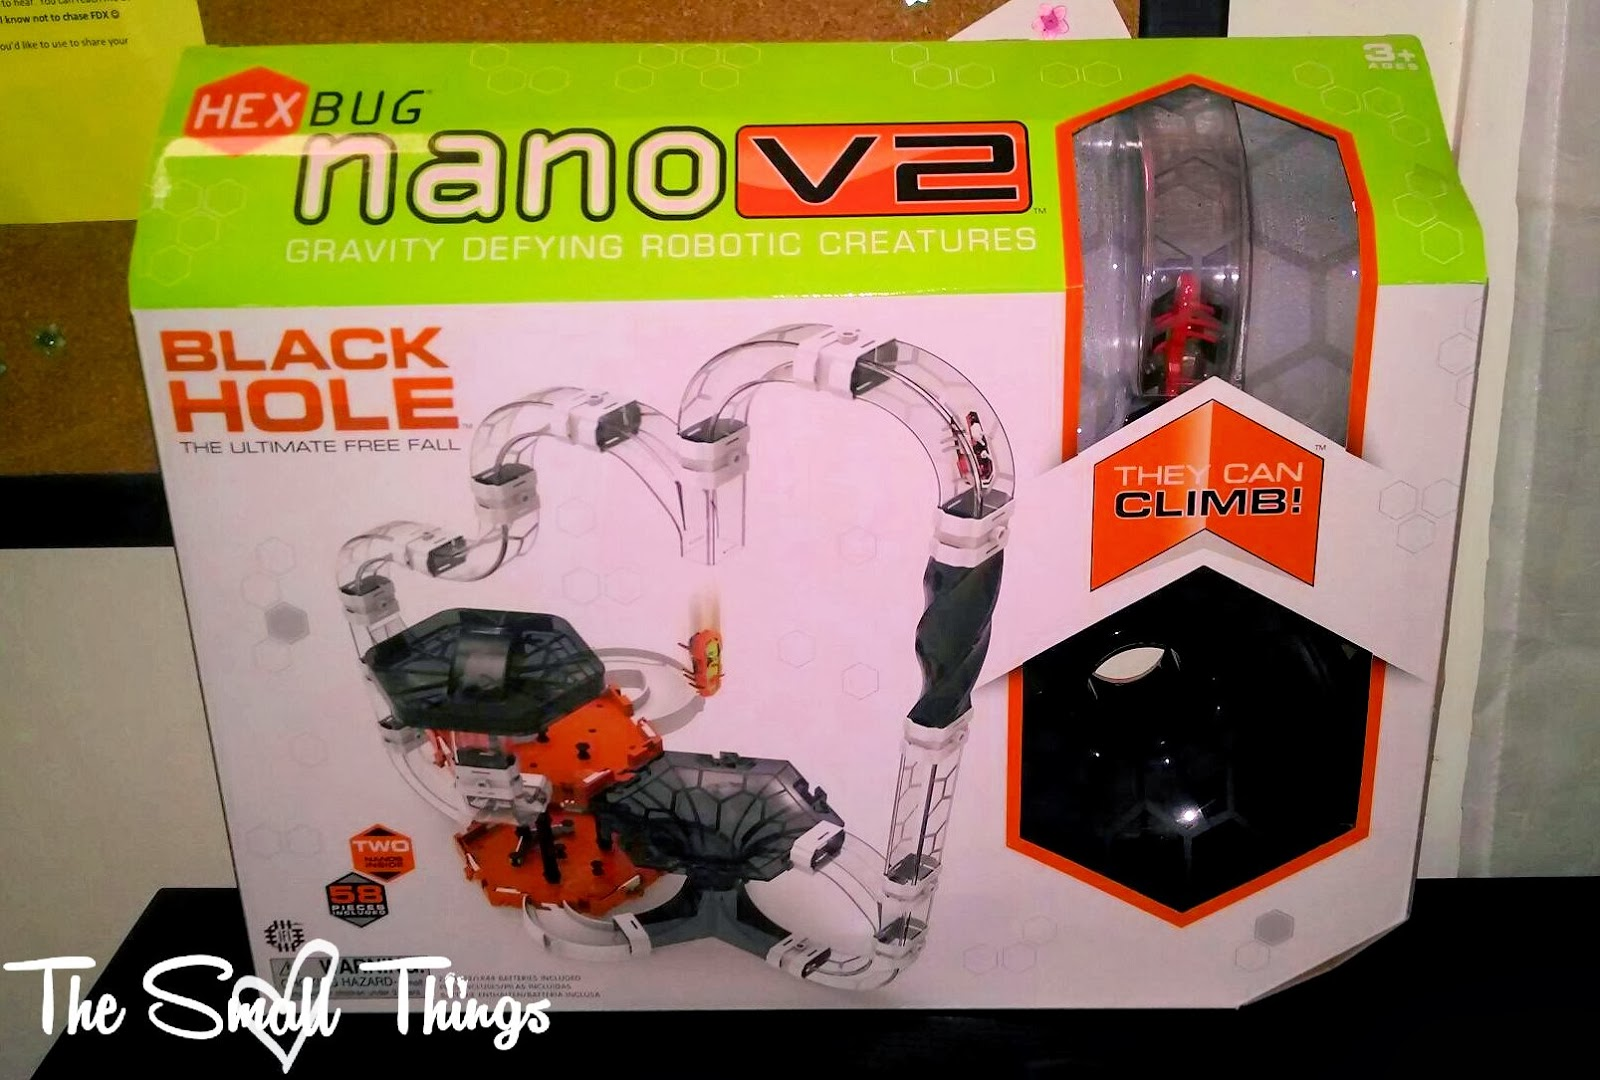 hexbug nano v2 black hole-#9